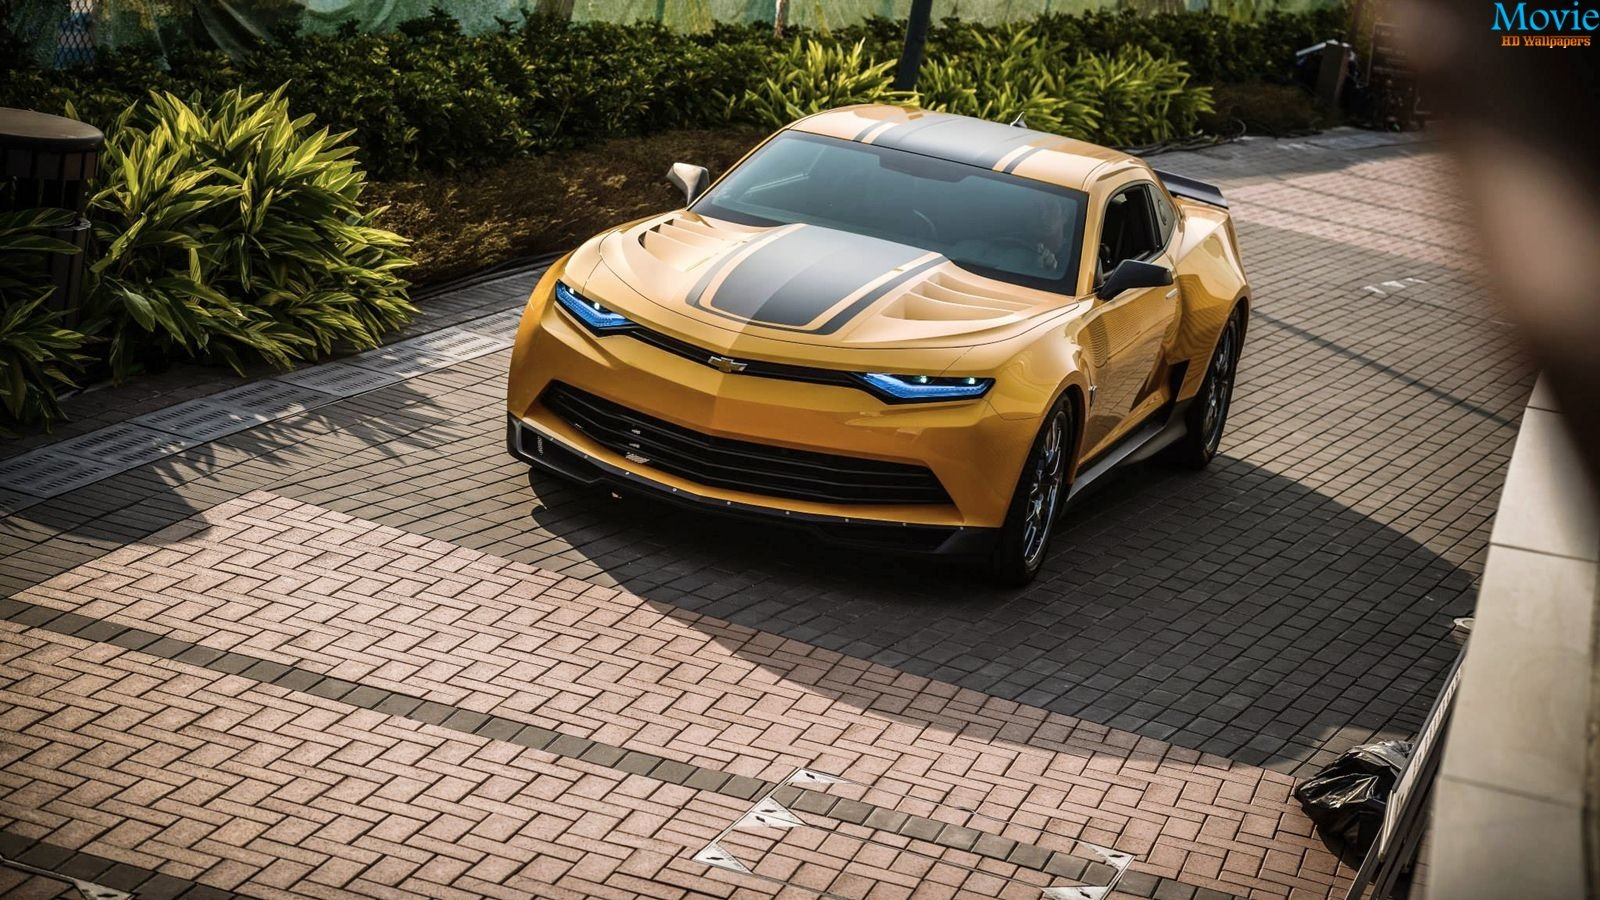 Transformers age of extinction 2014 movie hd wallpapers - Transformers bumblebee car wallpaper ...